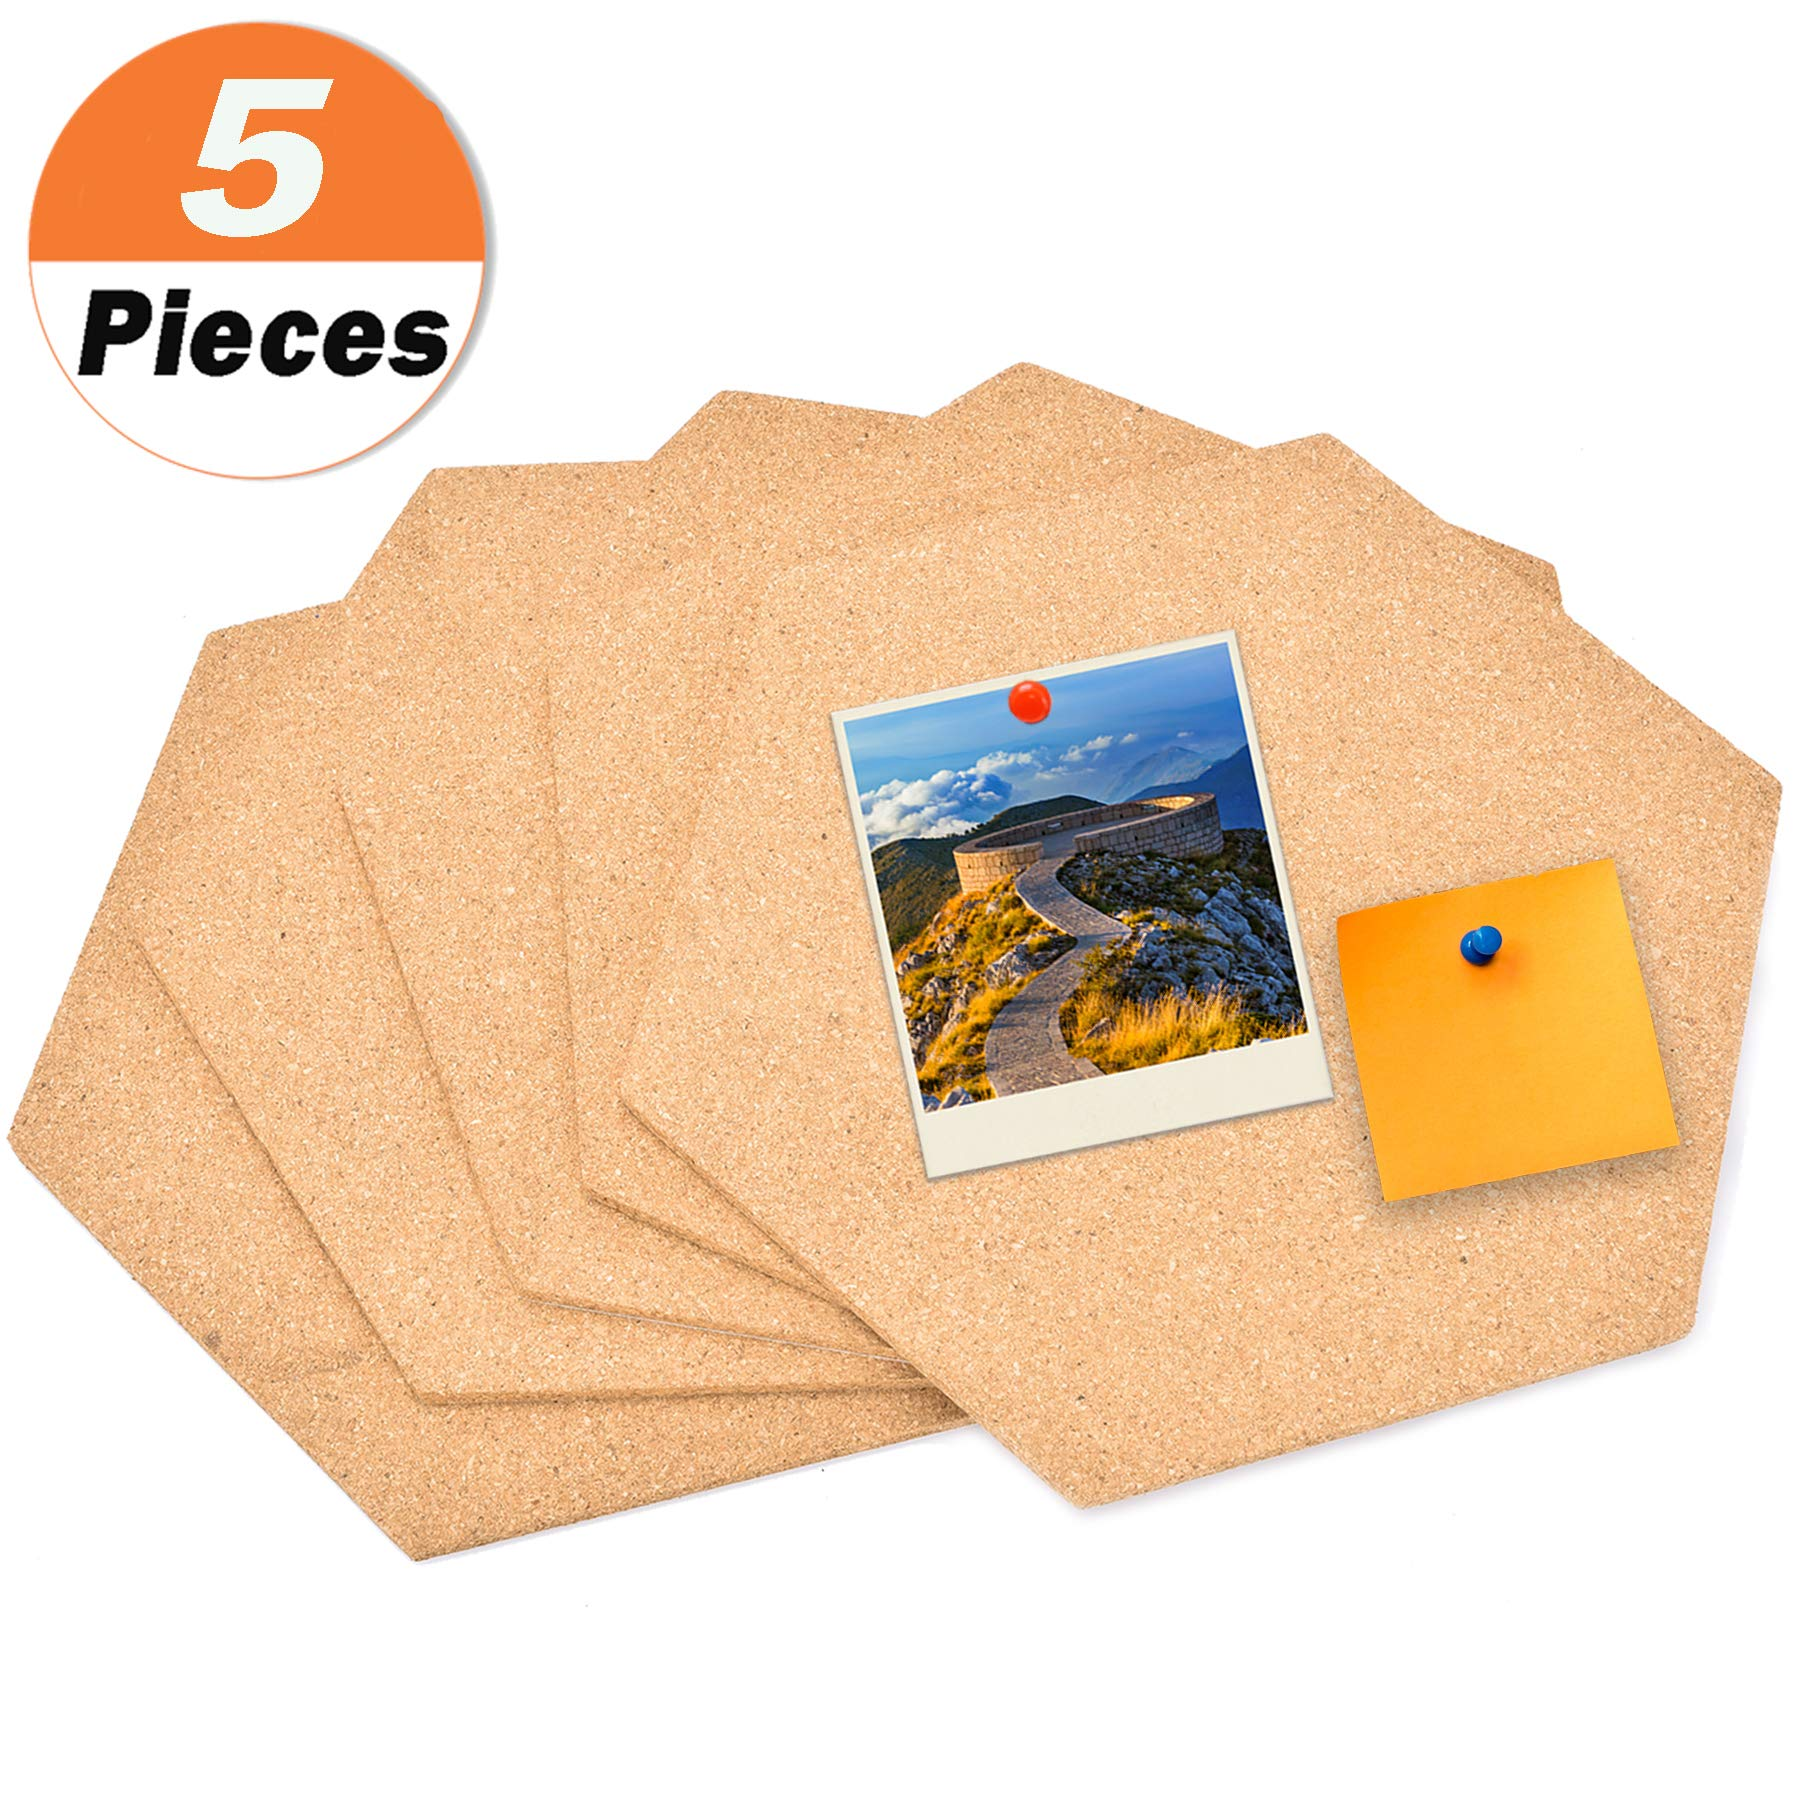 5 Pack Hexagon Cork Board Tiles with Adhesive 11.8 by 10.2'' - Buytra Mini Wall Bulletin Boards, Pin Board Decoration for Photos, Pictures, Sticky Notes, Drawing